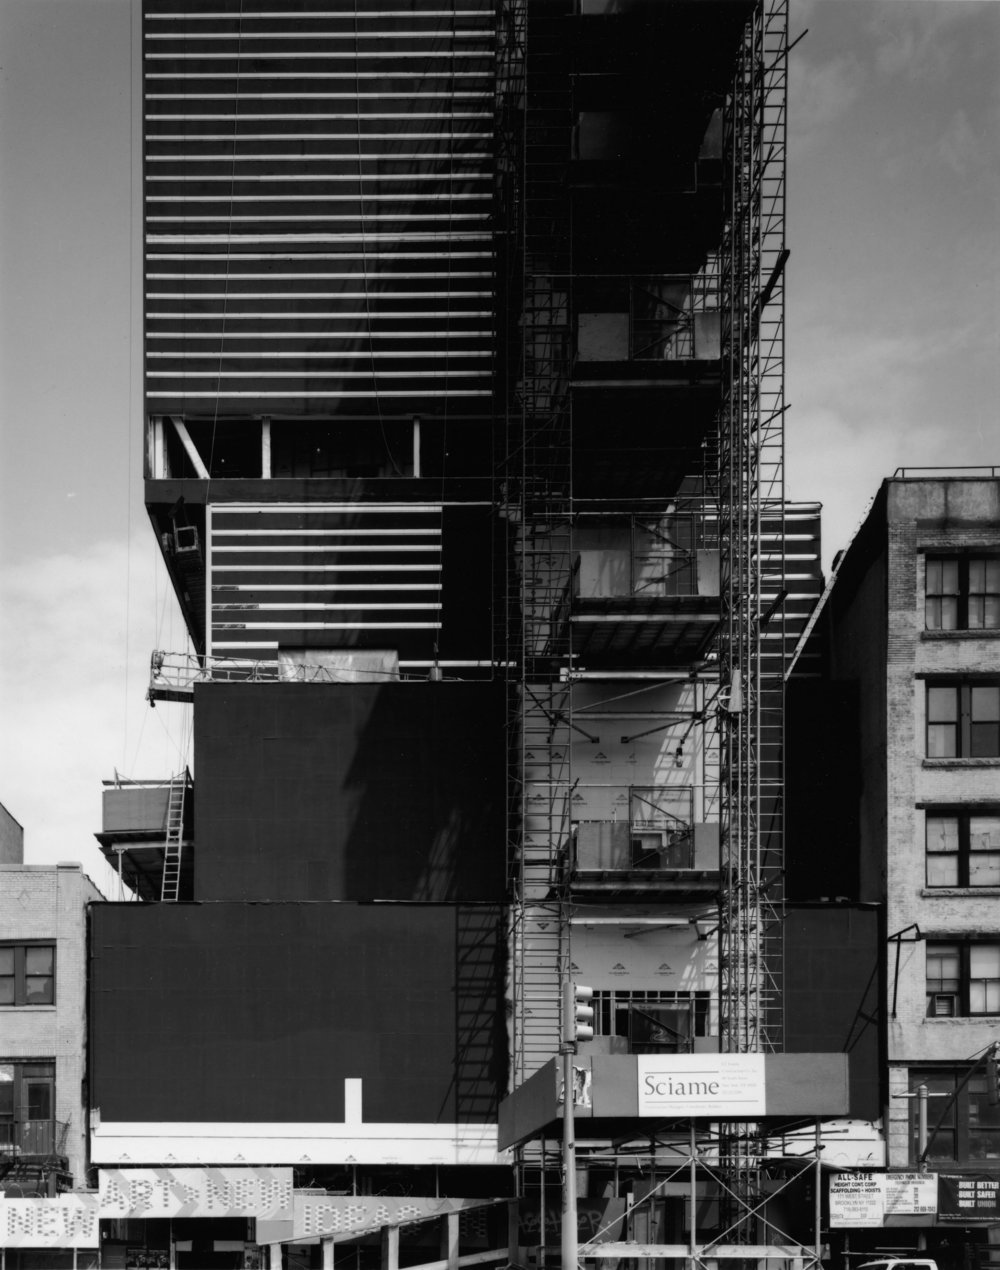 Untitled, New York, 2006